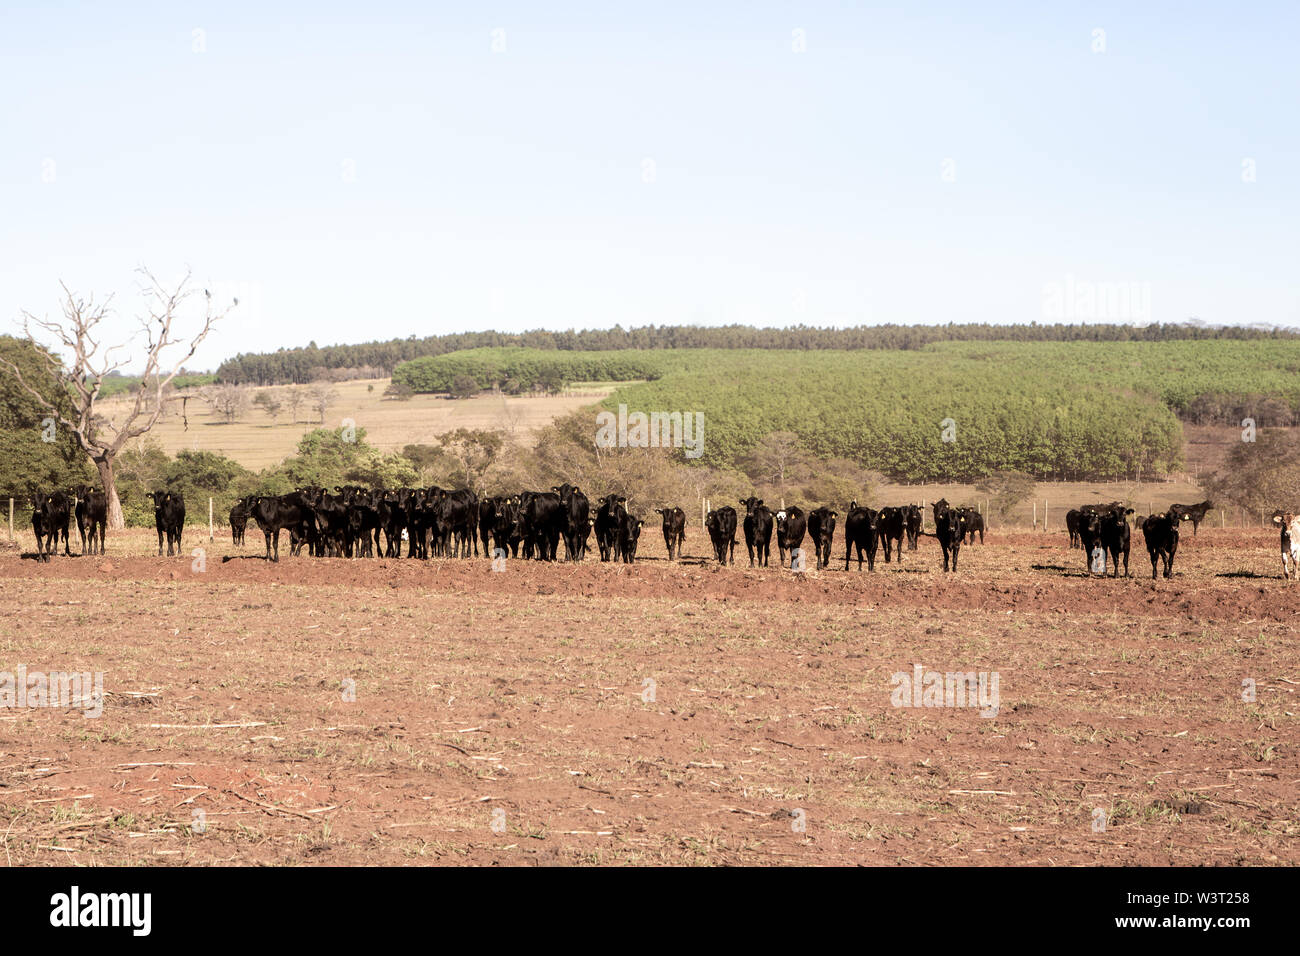 Cattle Angus and Wagyu on farm pasture with plowing in the background on beautiful summer day. Stock Photo